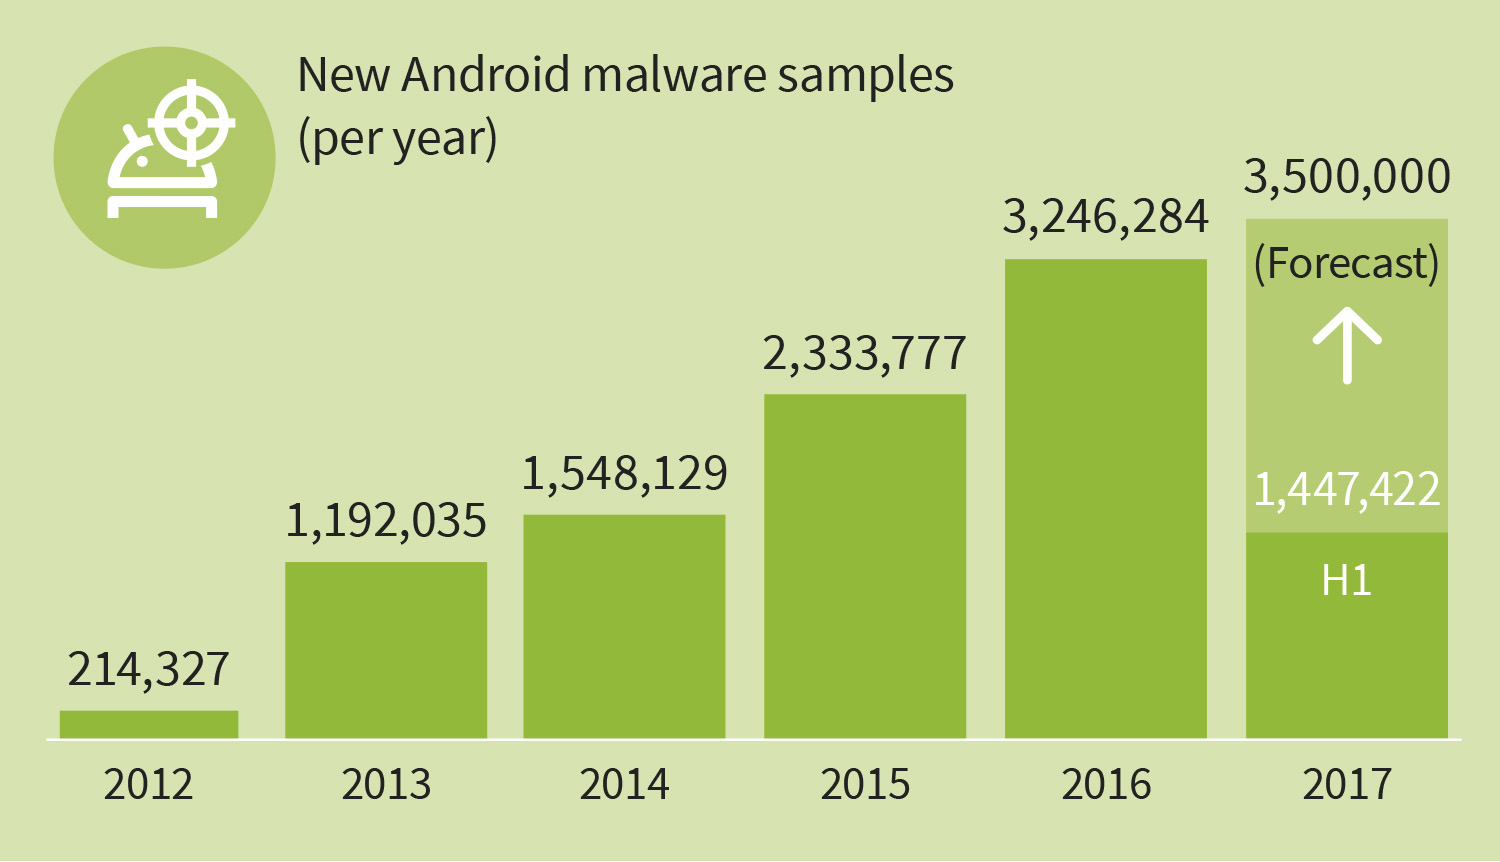 https://file.gdatasoftware.com/user_upload/Presse/Espana/2017/09/GDATA_Infographic_MWR_2017_H1_New_malware_samples_years_EN.JPG